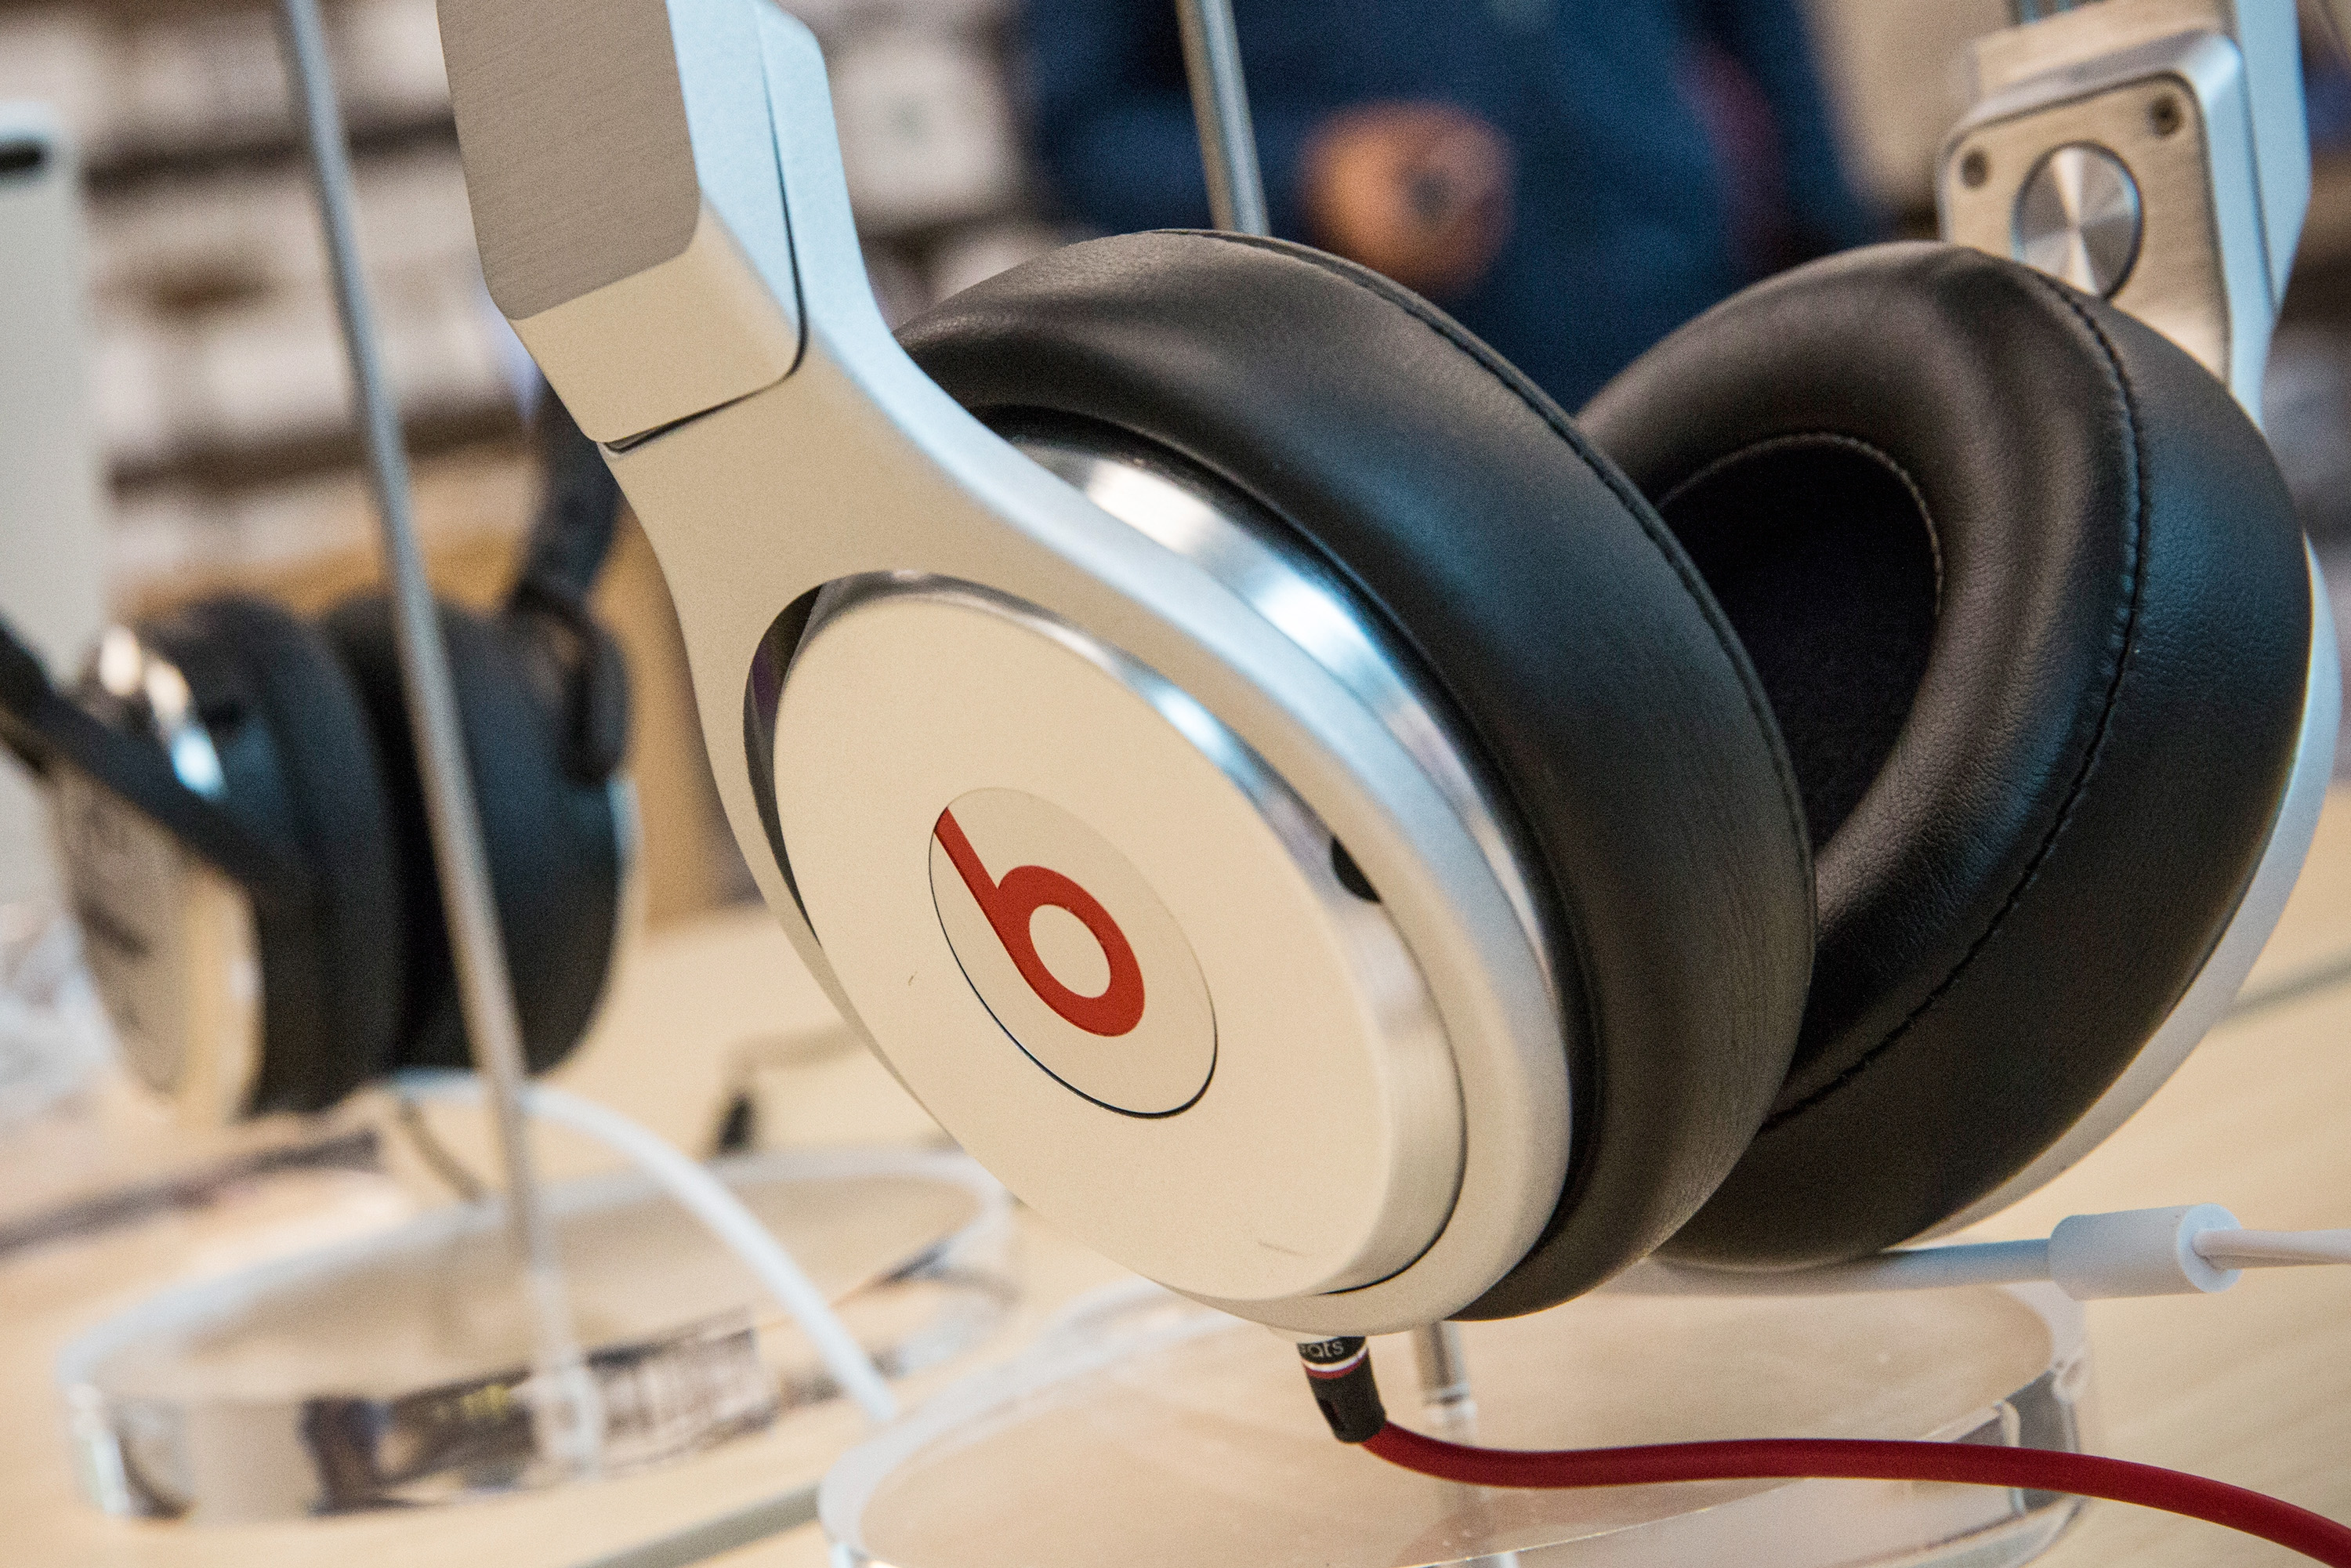 Beats headphones are sold in an Apple store on May 9, 2014 in New York City.